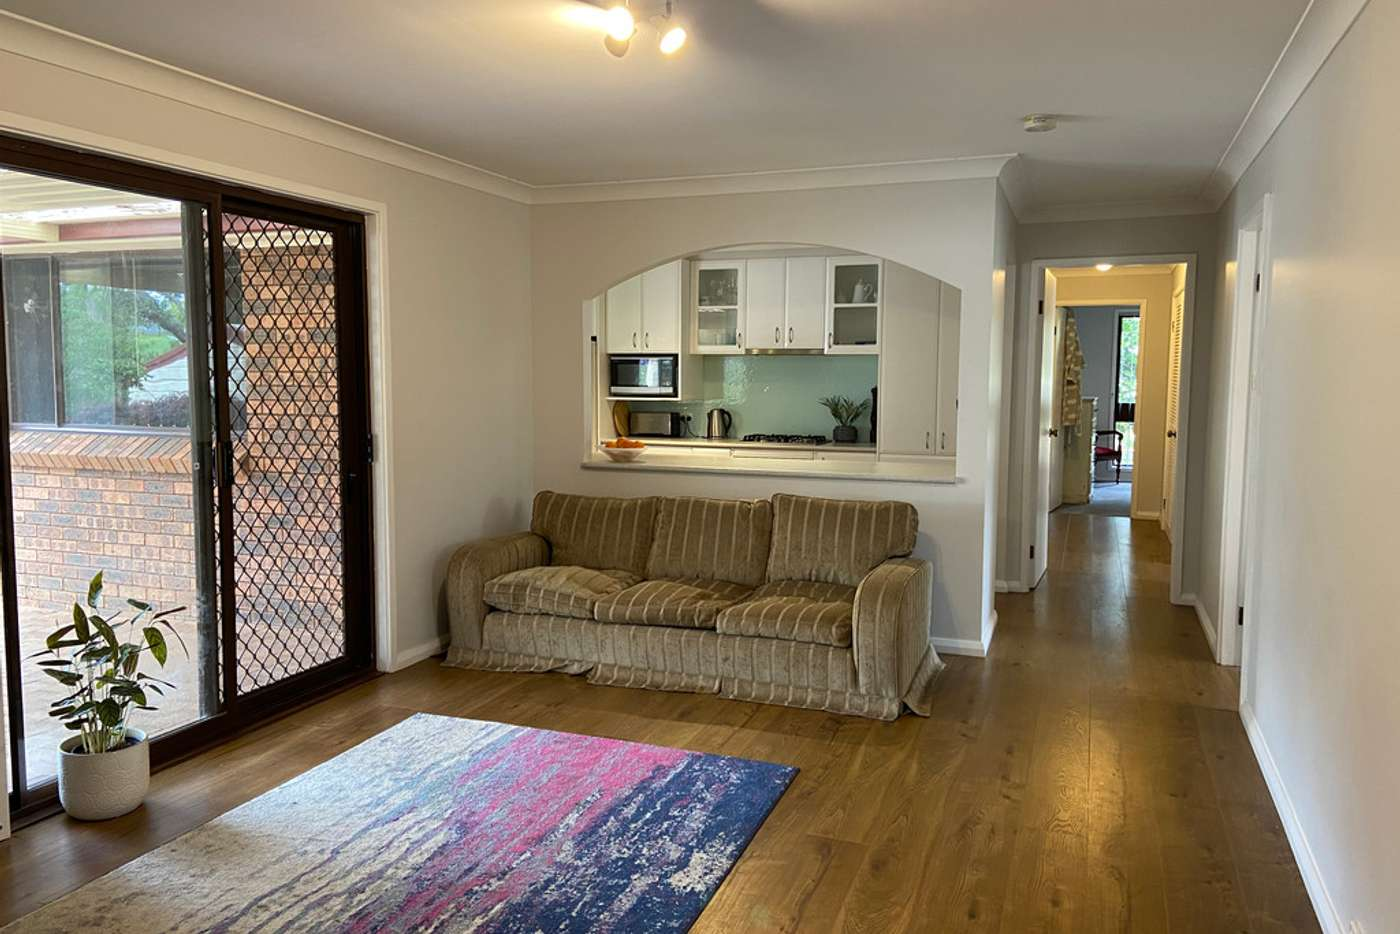 Seventh view of Homely house listing, 11 Suffolk Place, Tahmoor NSW 2573